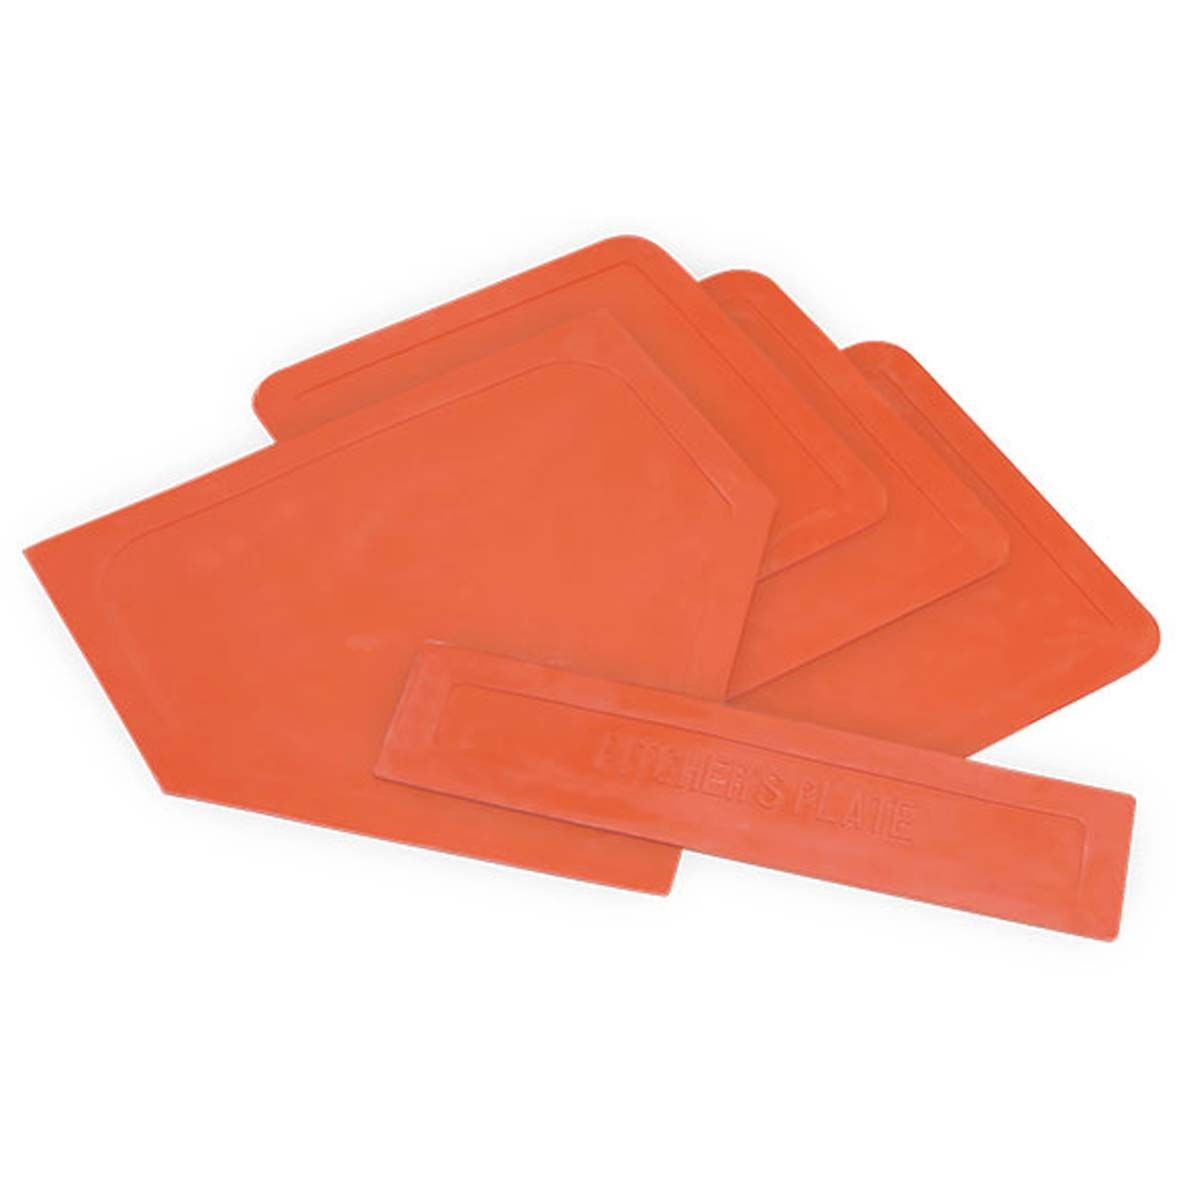 Packaging or Promotional image for Orange Home Plate, Pitchers Plate and Base Set